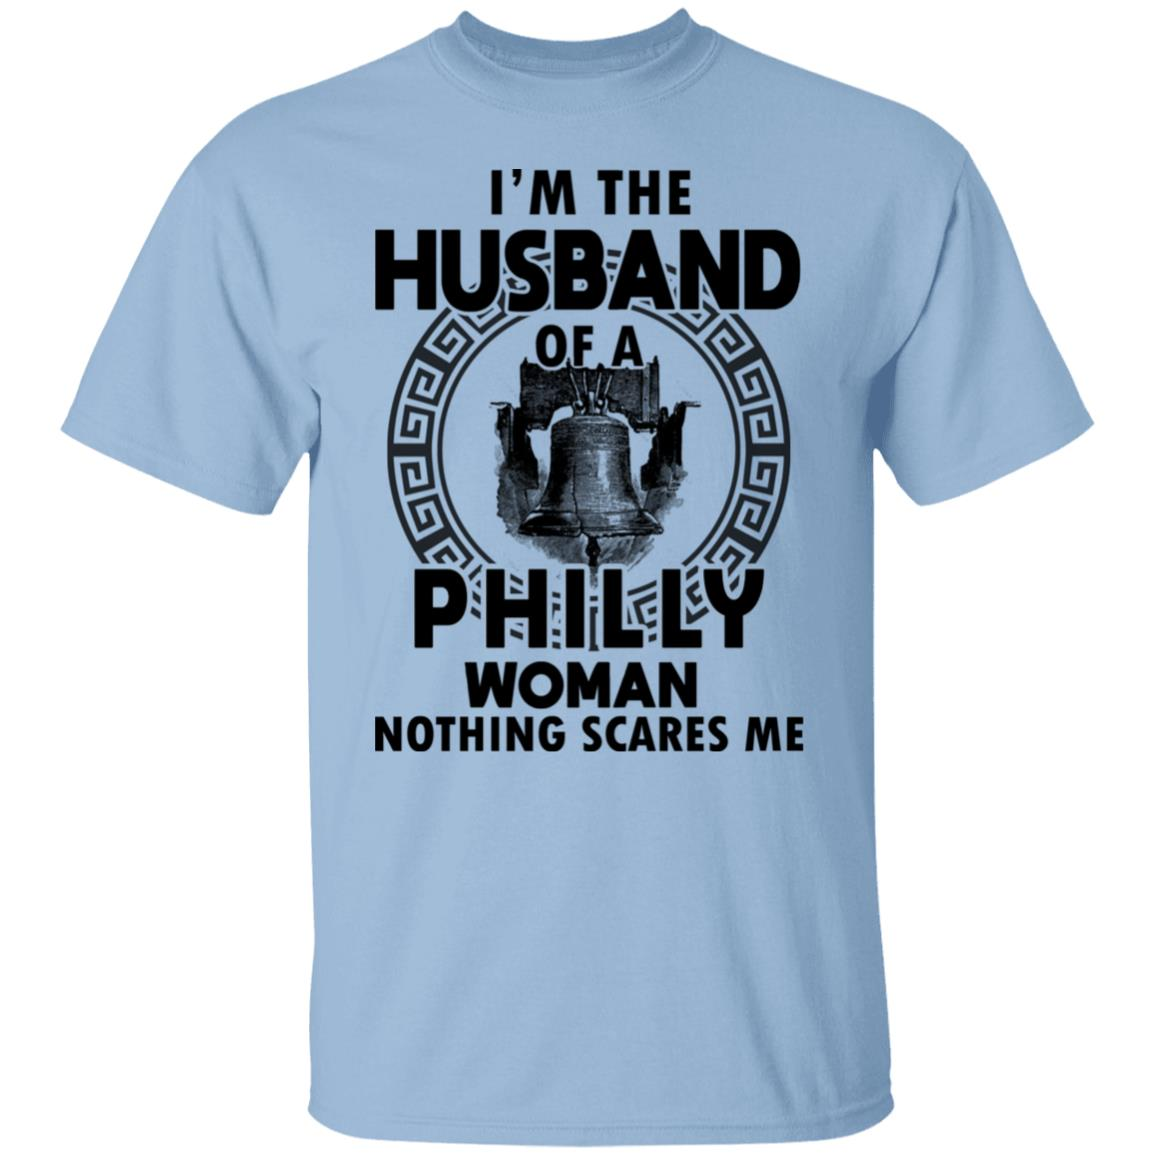 I'M THE HUSBAND OF A PHILLY WOMAN